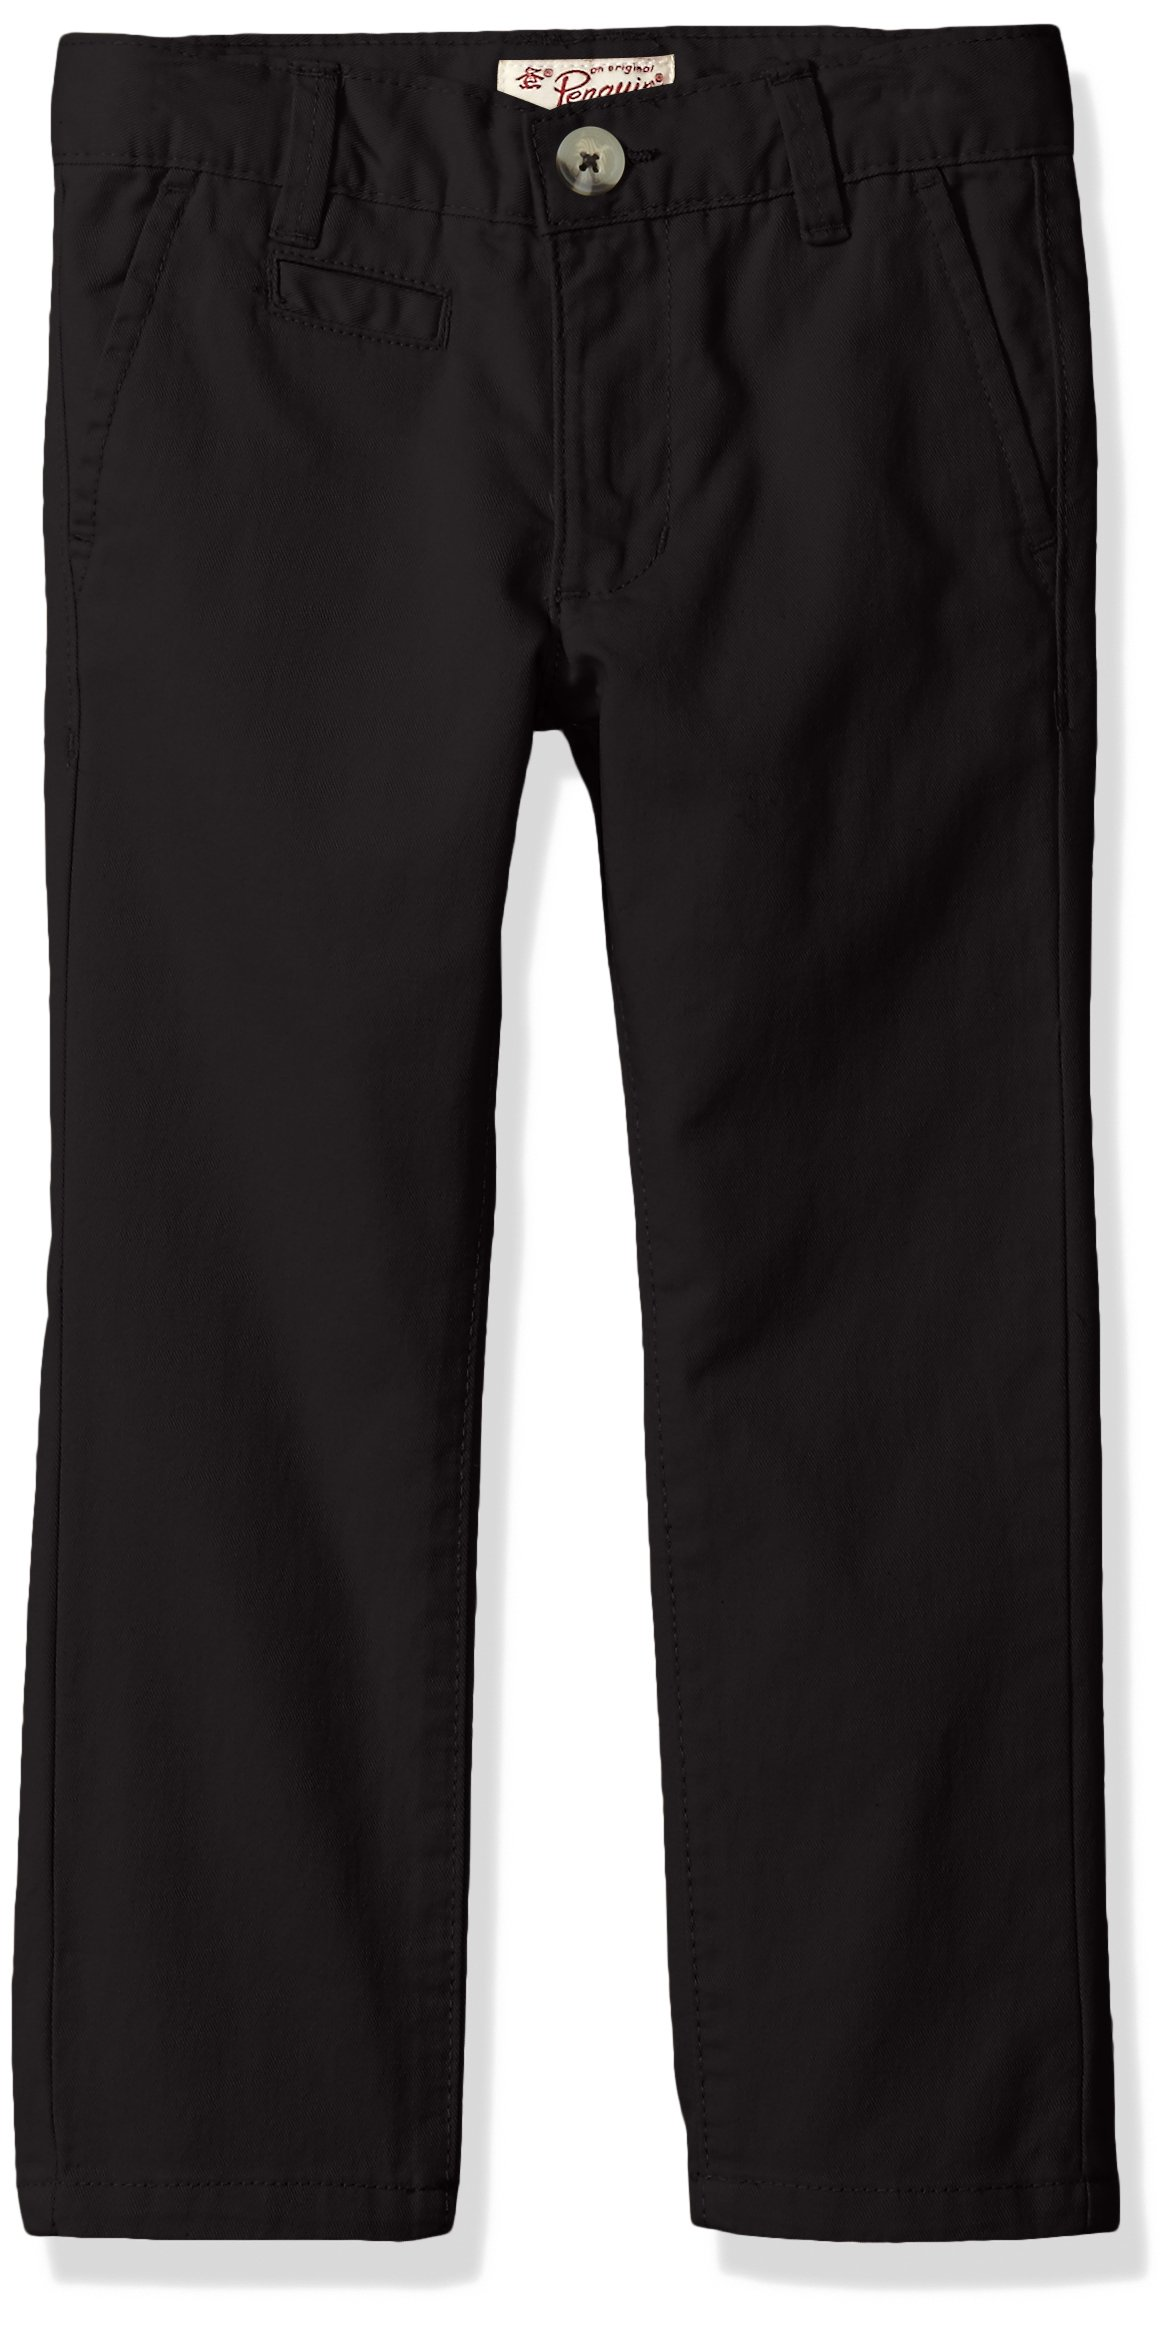 Penguin Big Boys' Twill Pant (More Styles Available), Black, 14